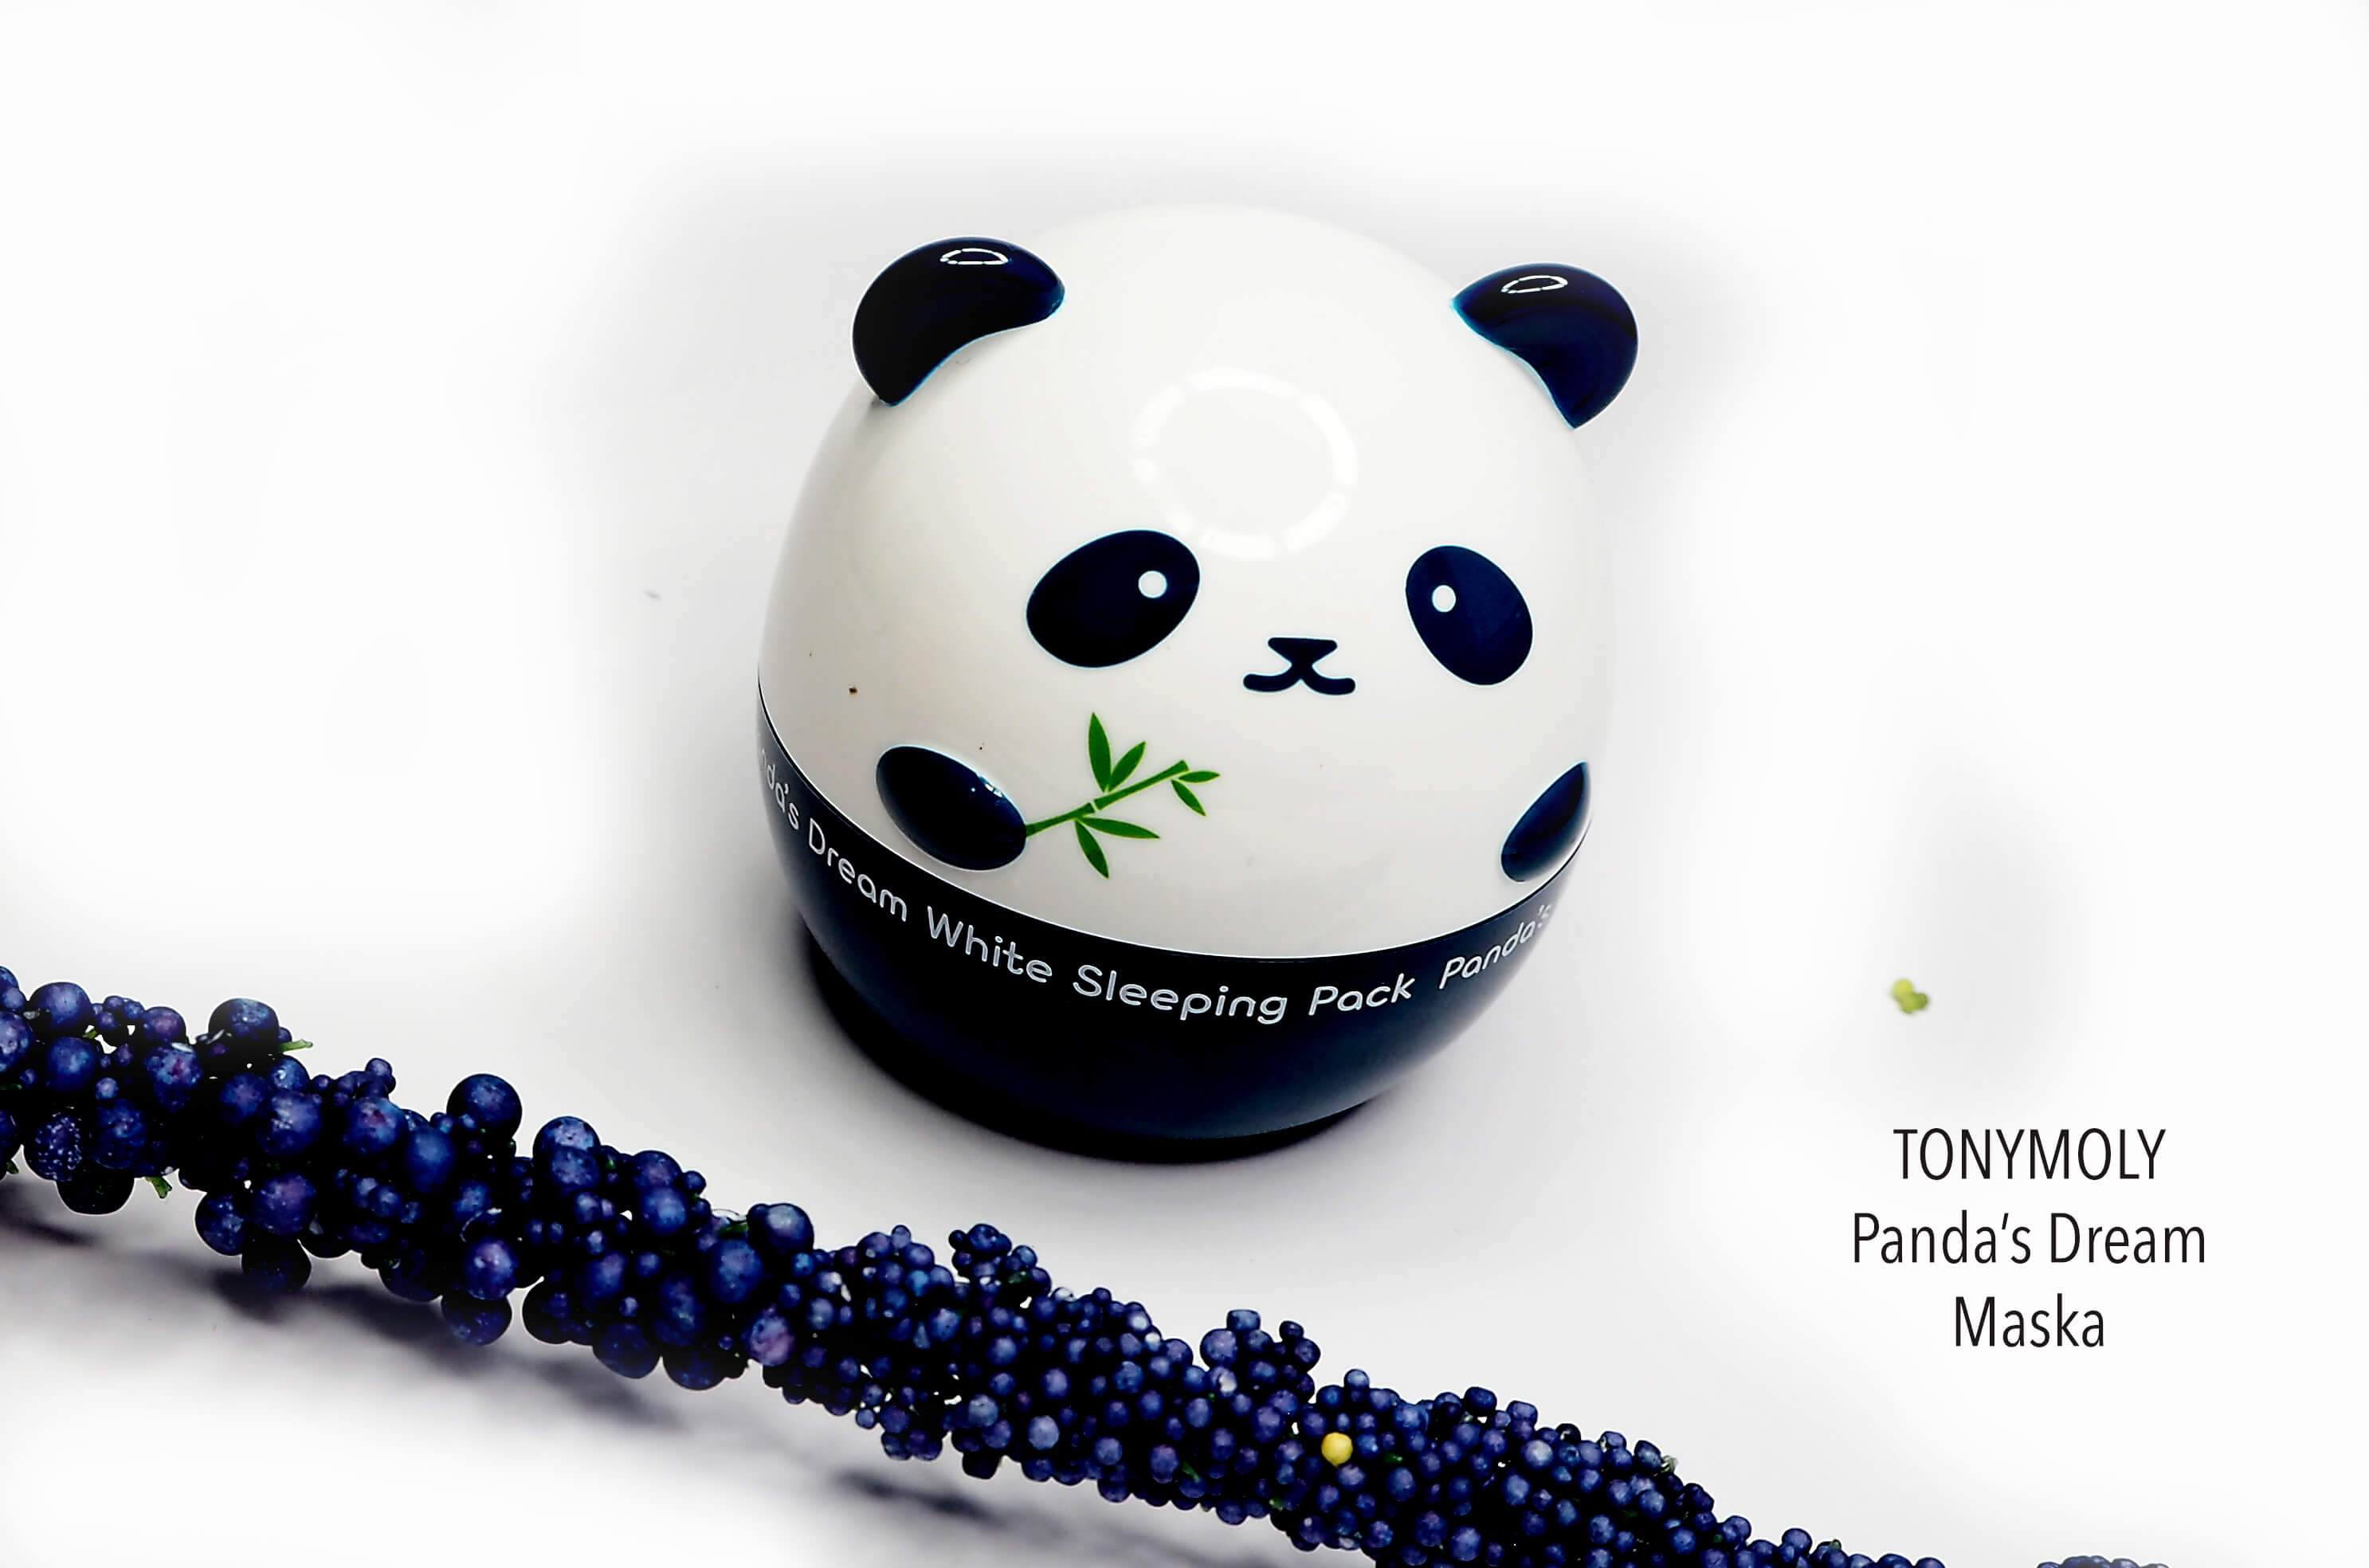 MASKA TONYMOLY Panda's Dream White Sleeping Pack